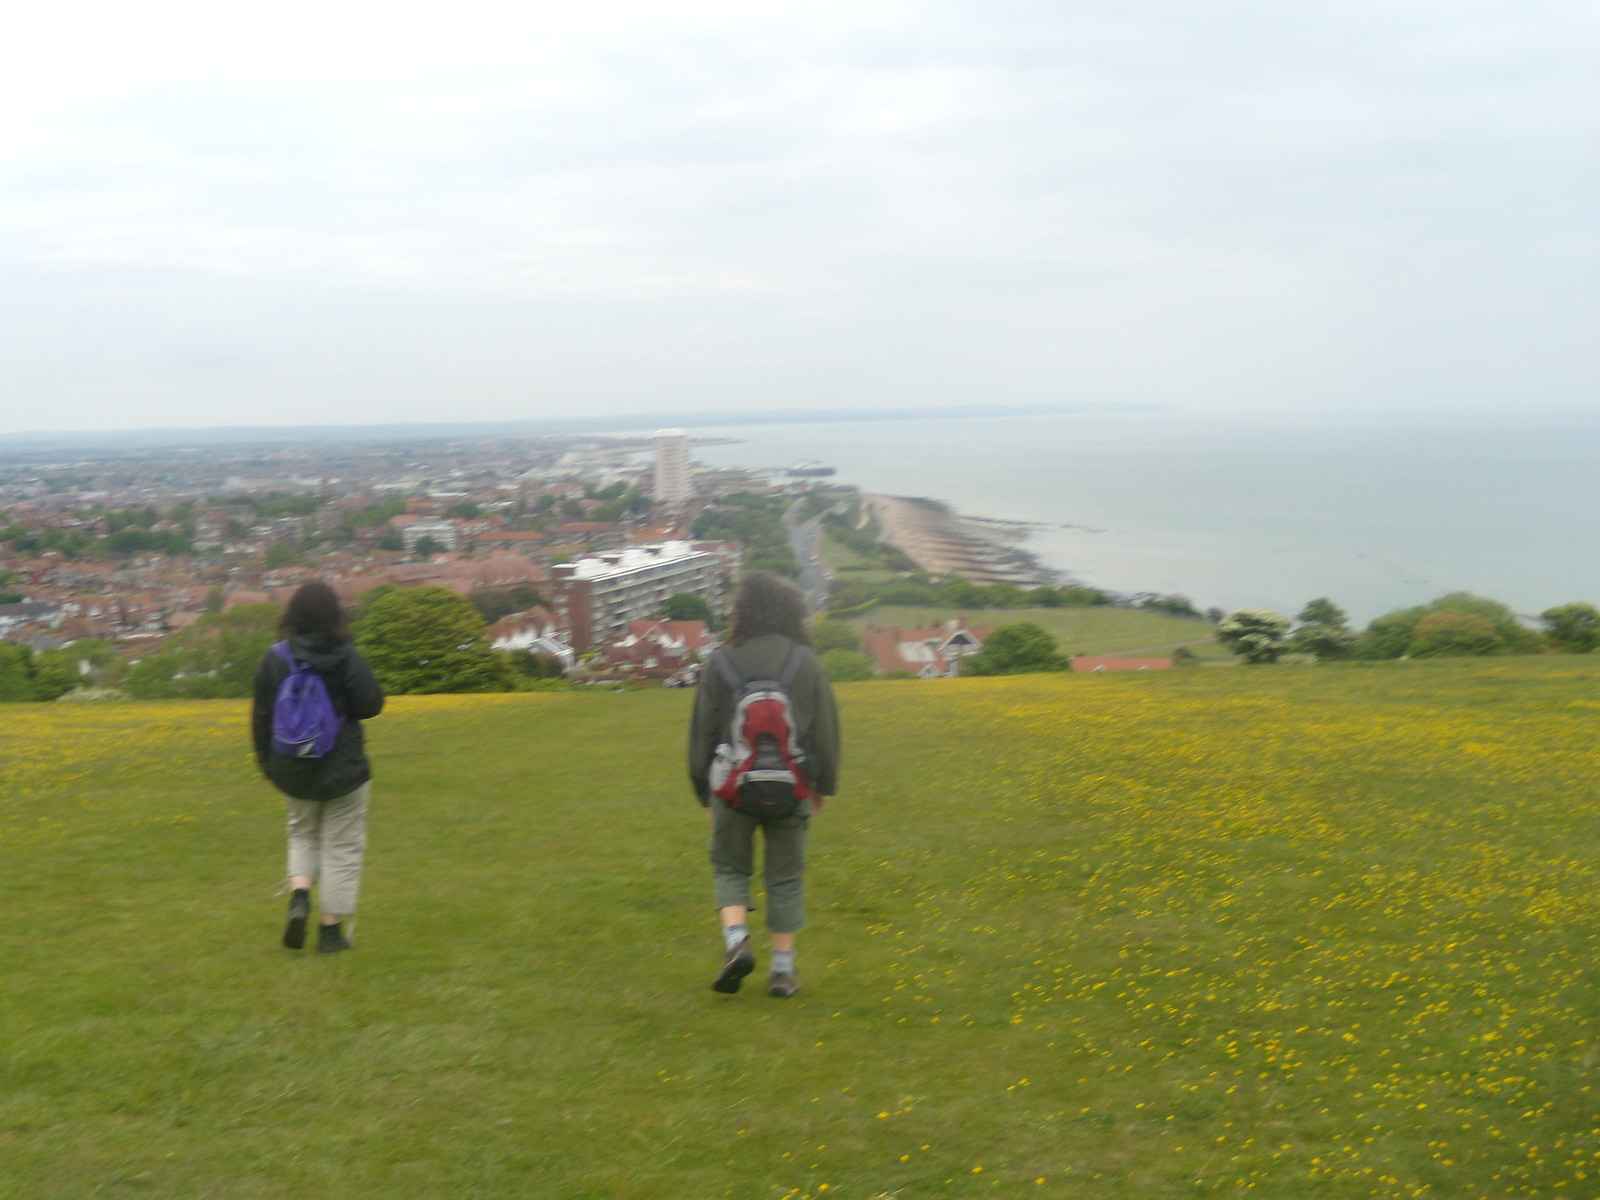 Buttercups over Eastbourne Seaford to Eastbourne